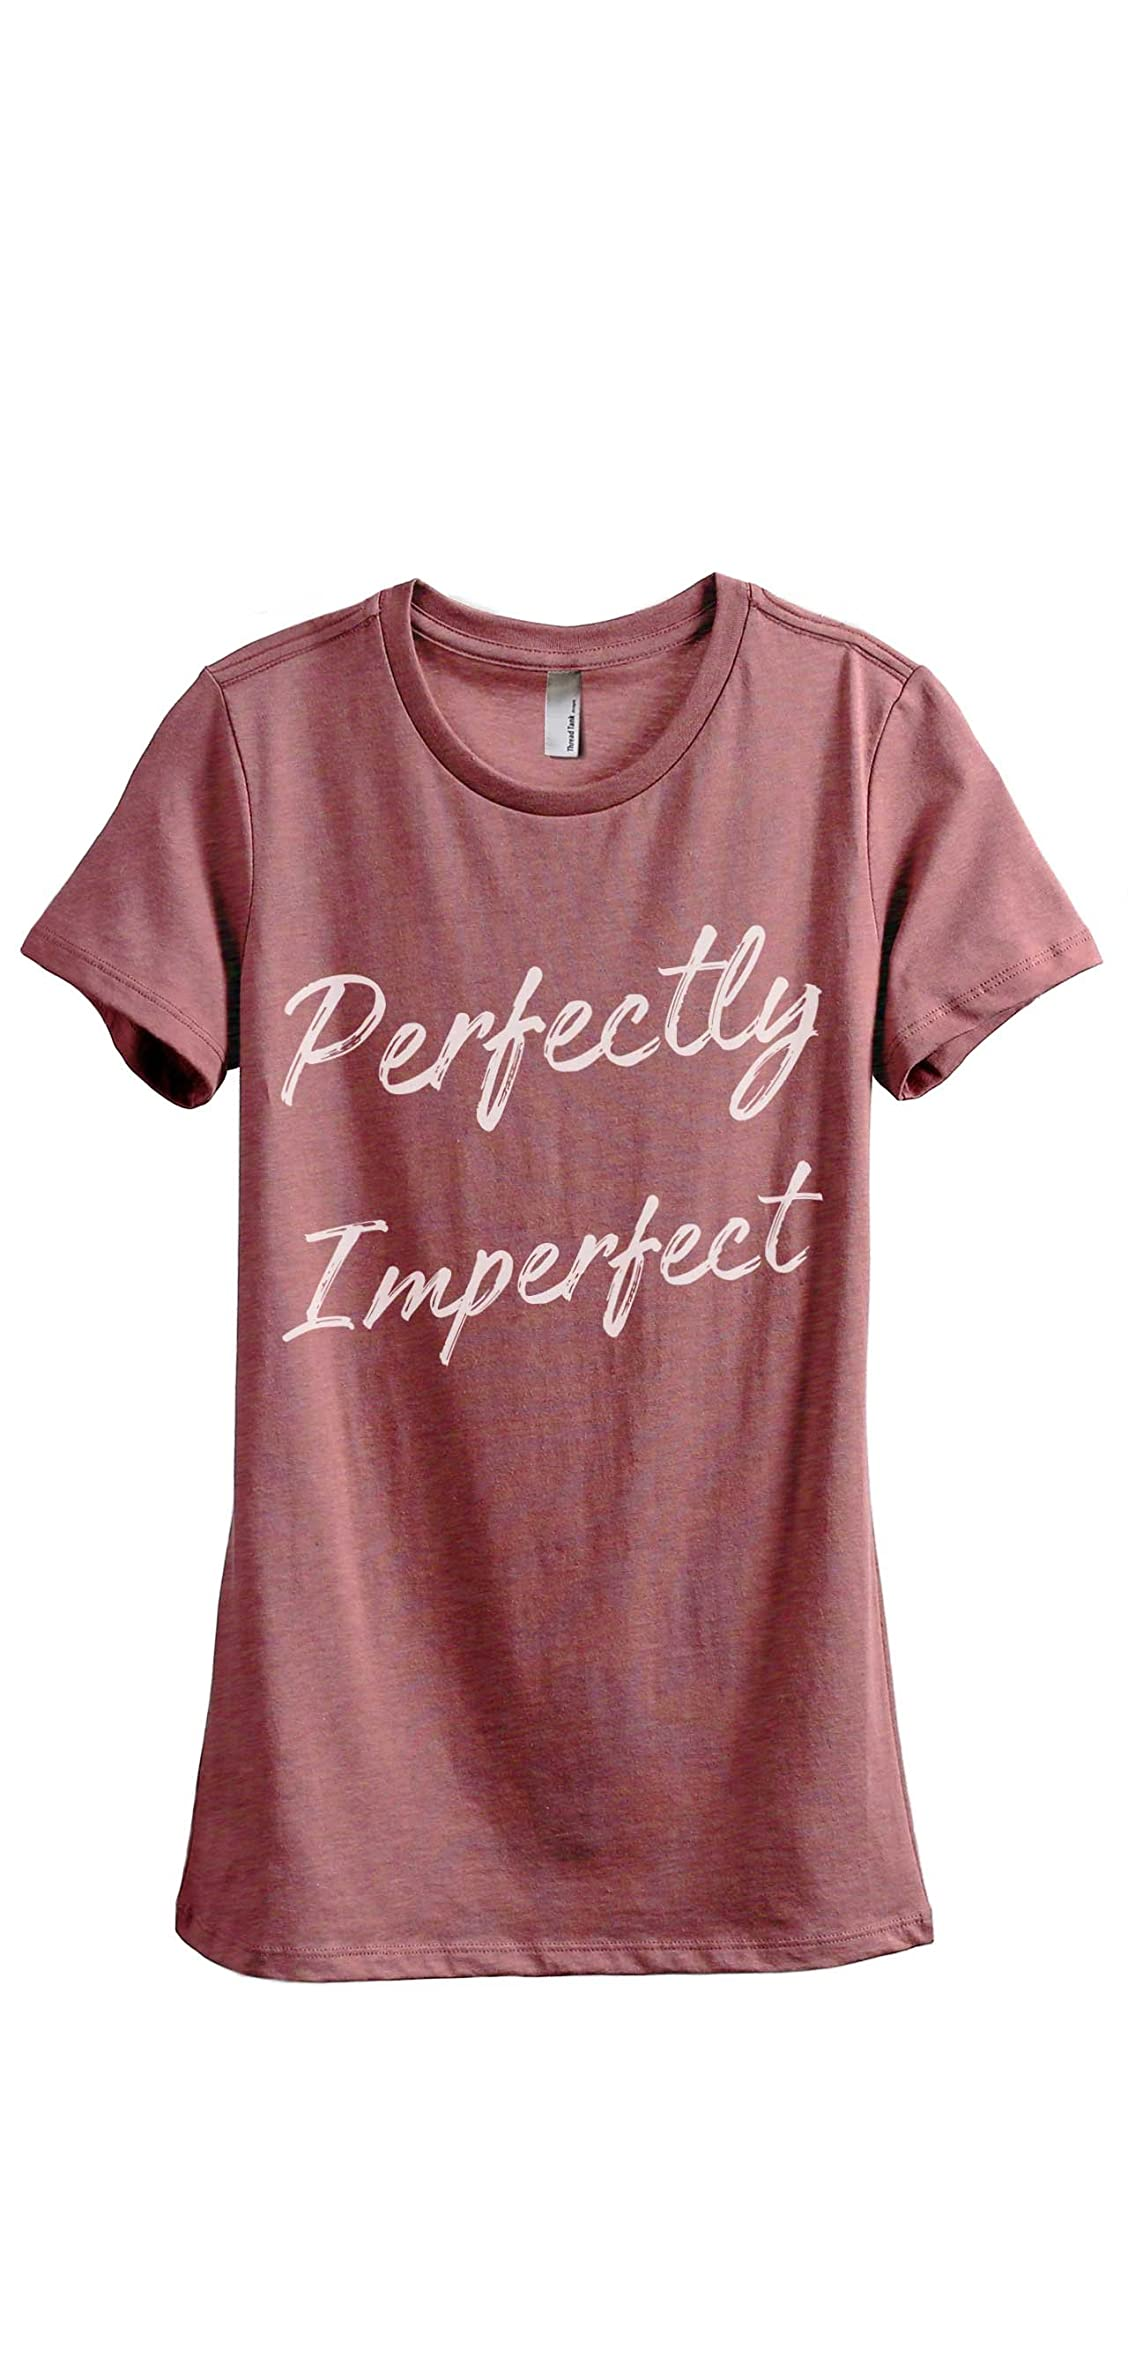 Perfectly Imperfect Women's Fashion Relaxed T-shirt